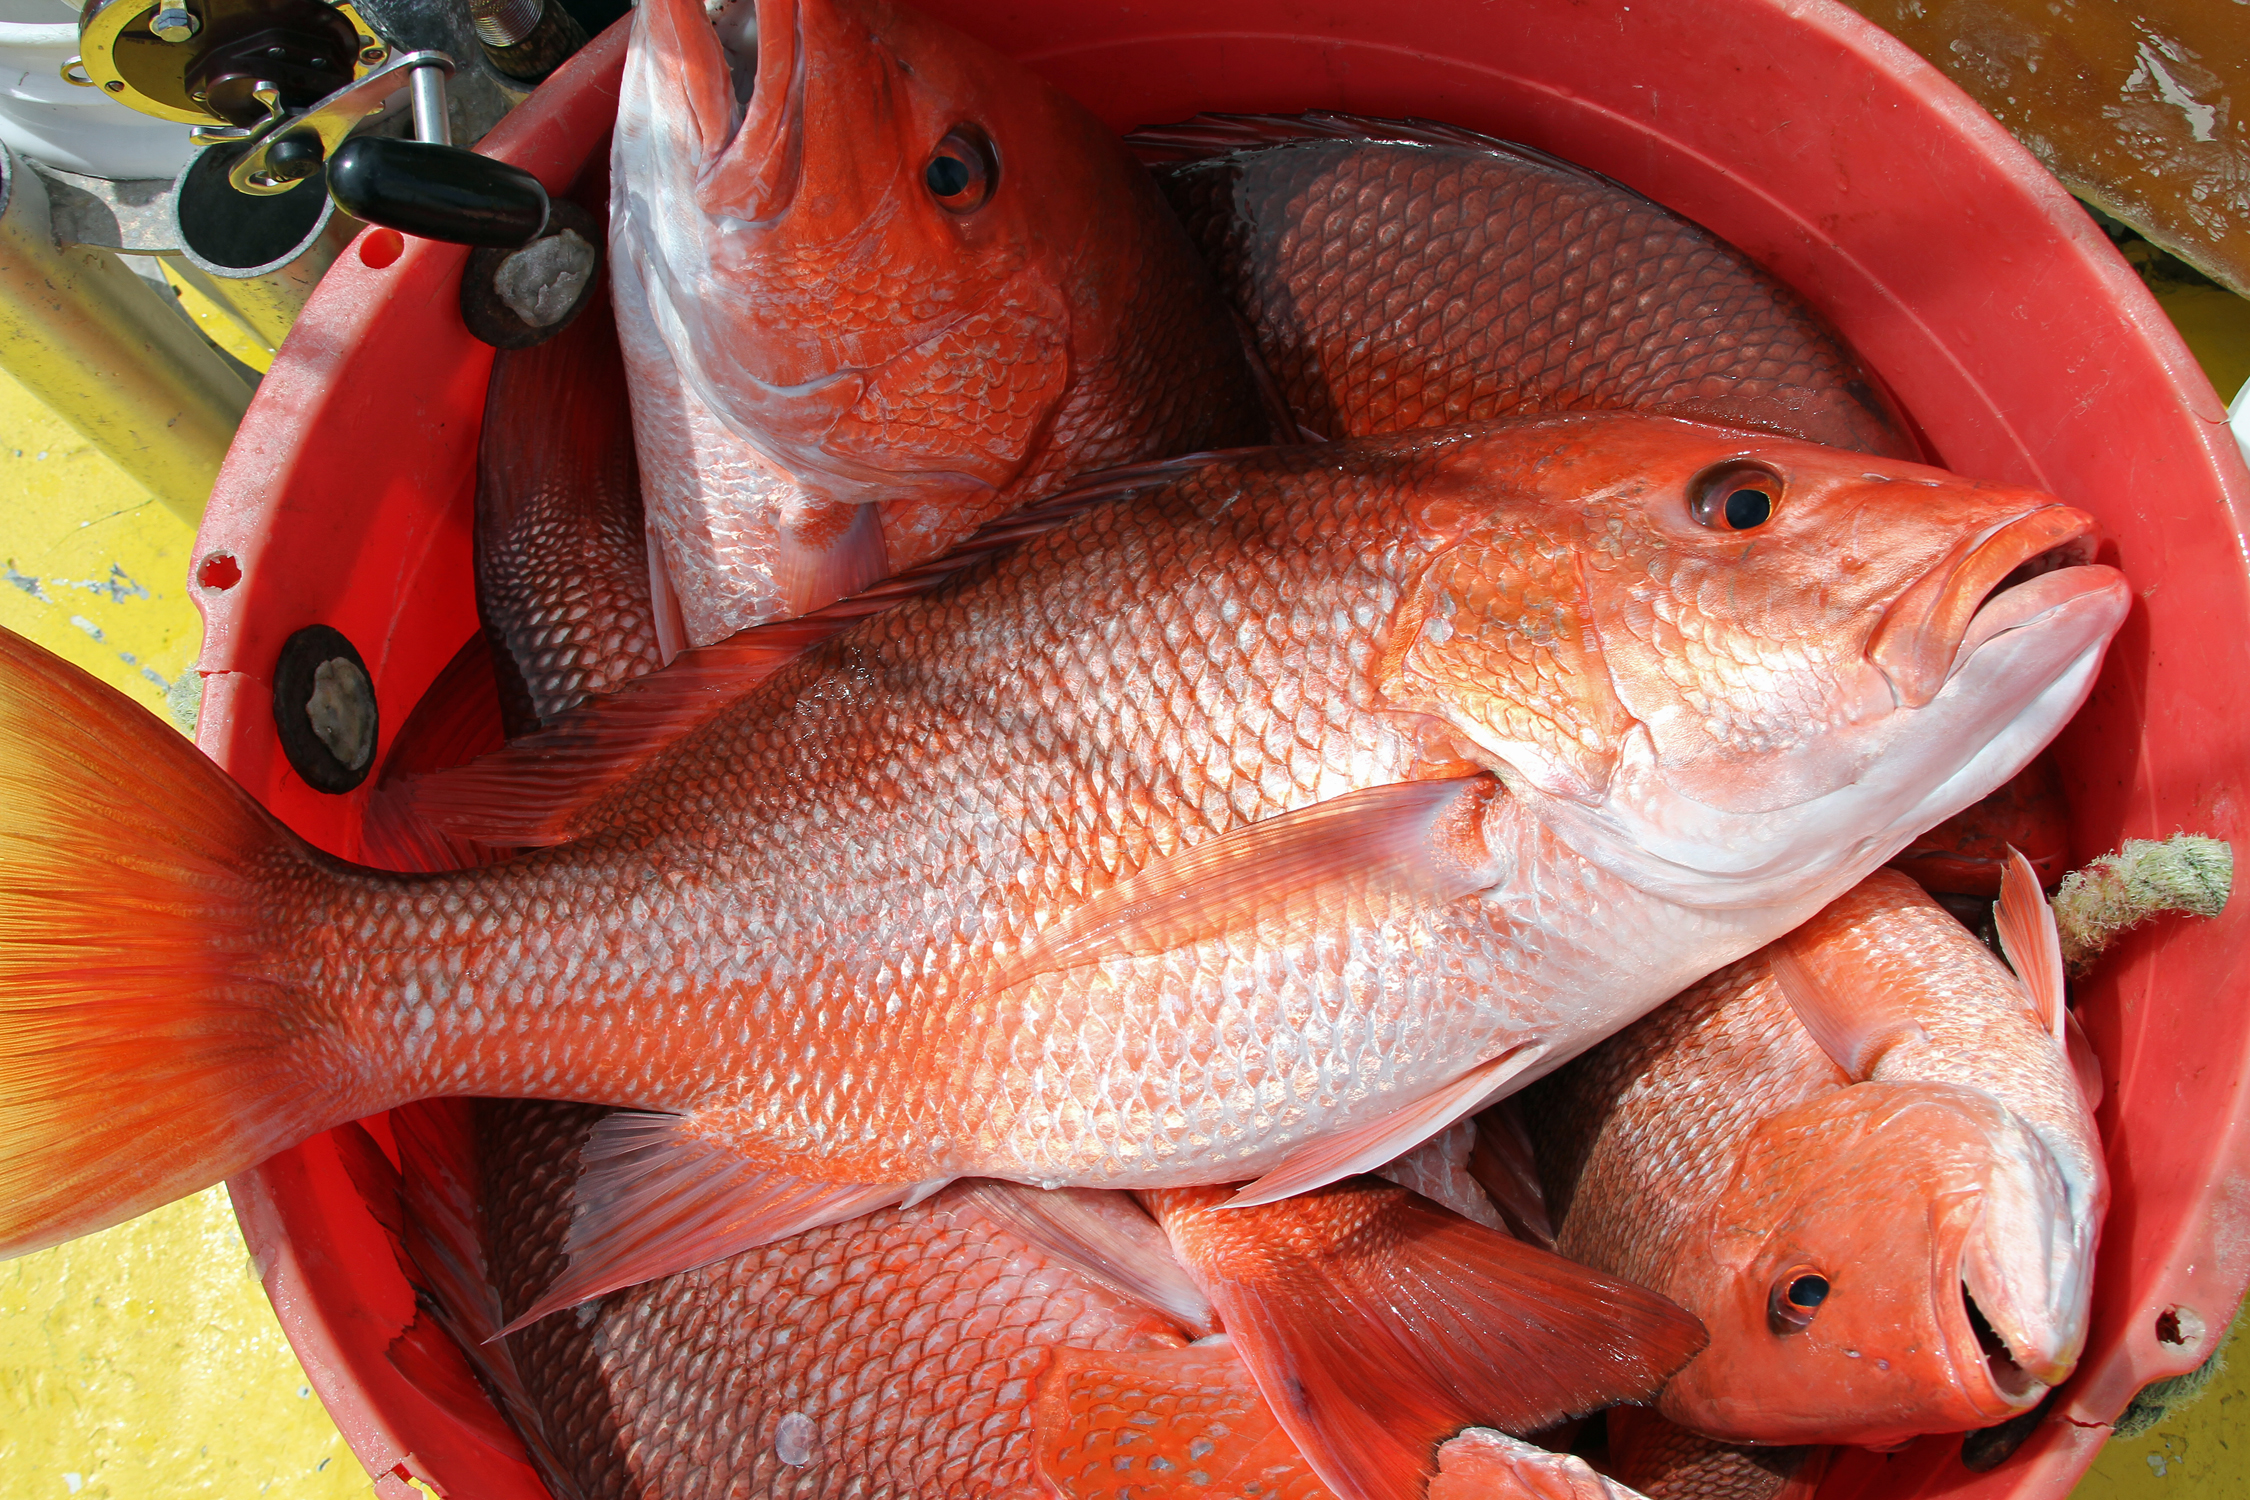 Alabama Adds Three-Day Red Snapper Season for Private Anglers in October